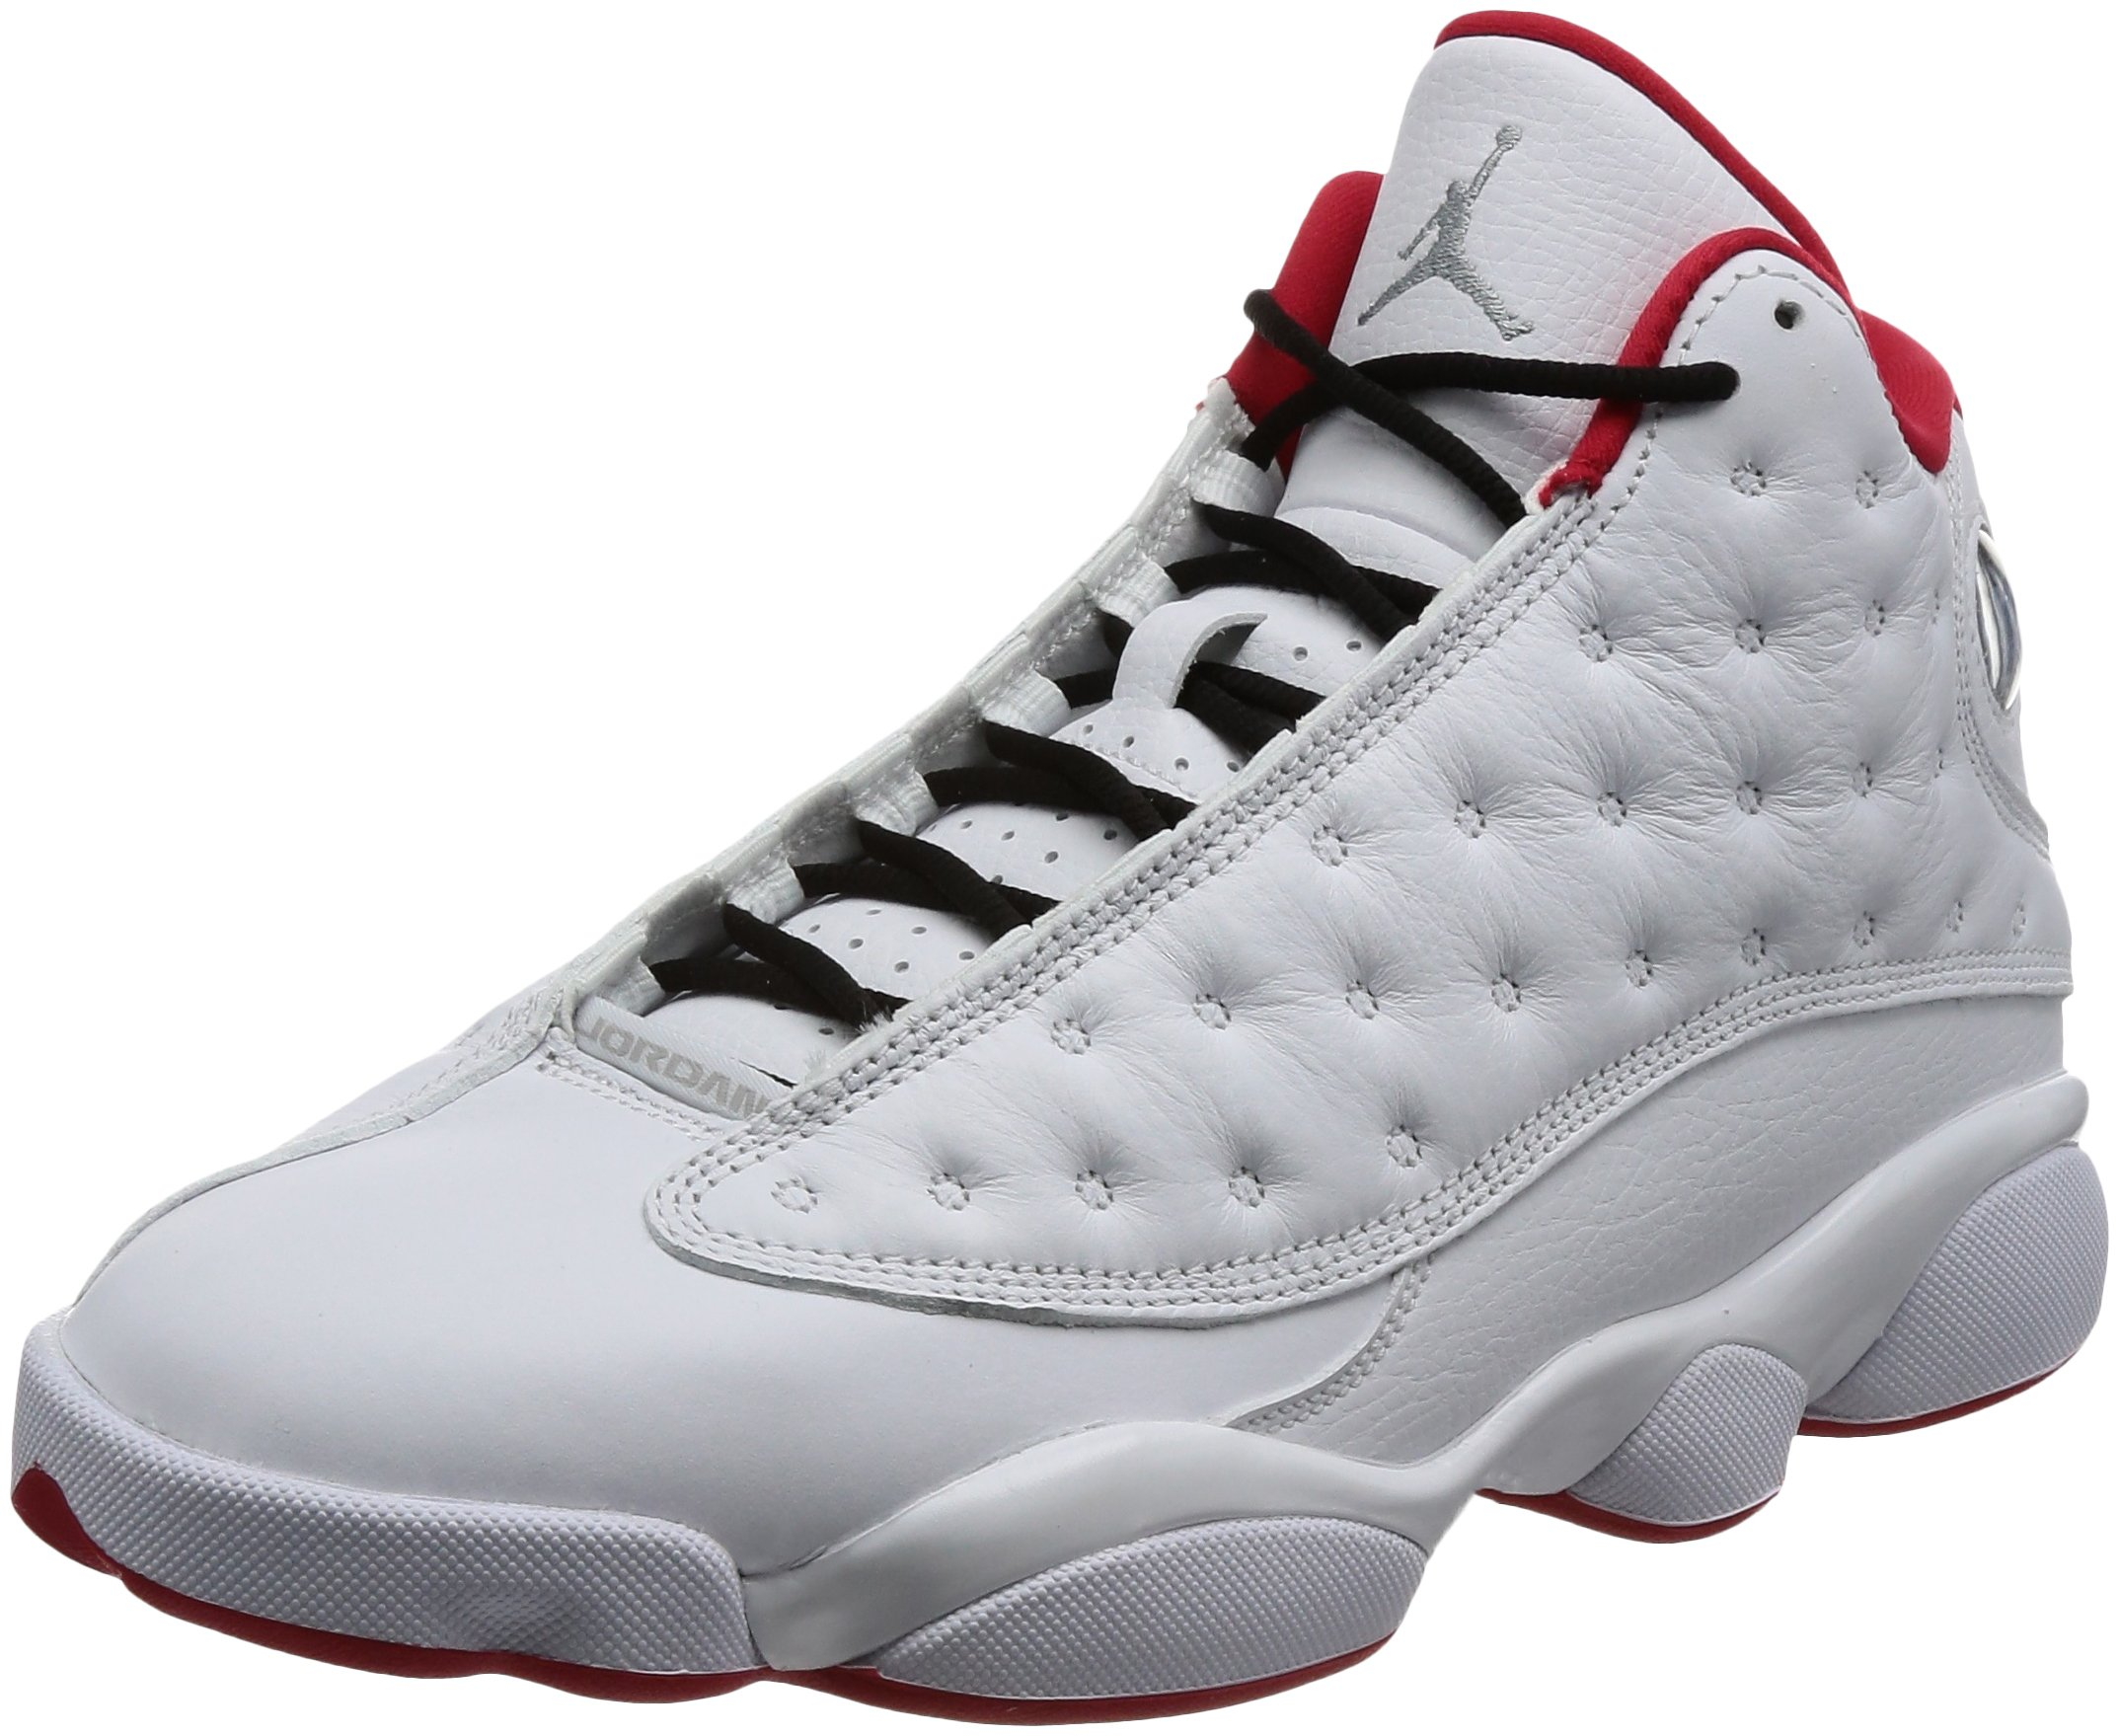 Nike Air Jordan 13 Retro Mens Basketball Shoes White/Metallic Silver/University Red, 11 by NIKE